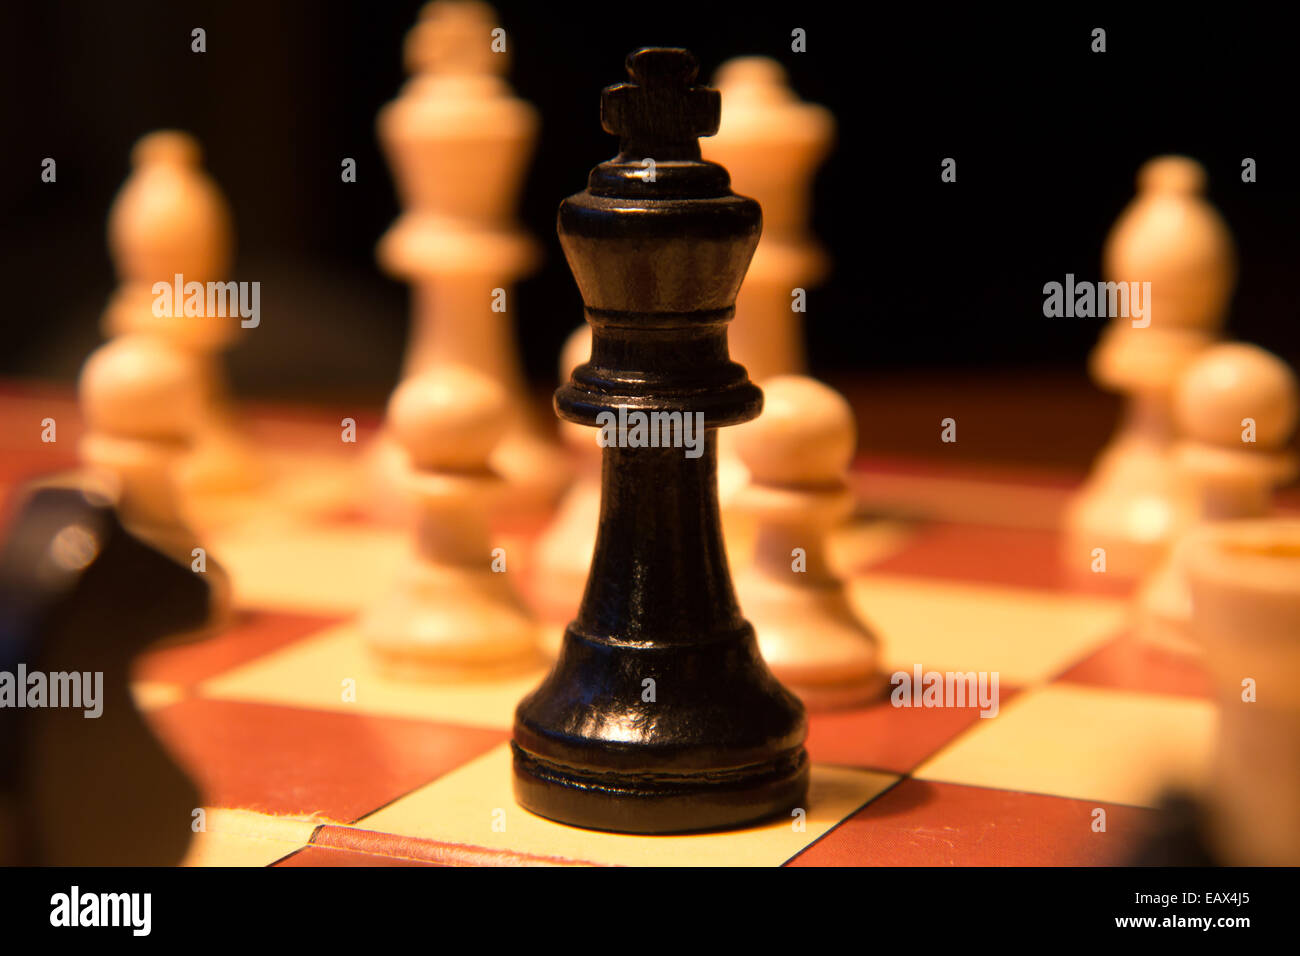 chess king checkmate on chess board - Stock Image